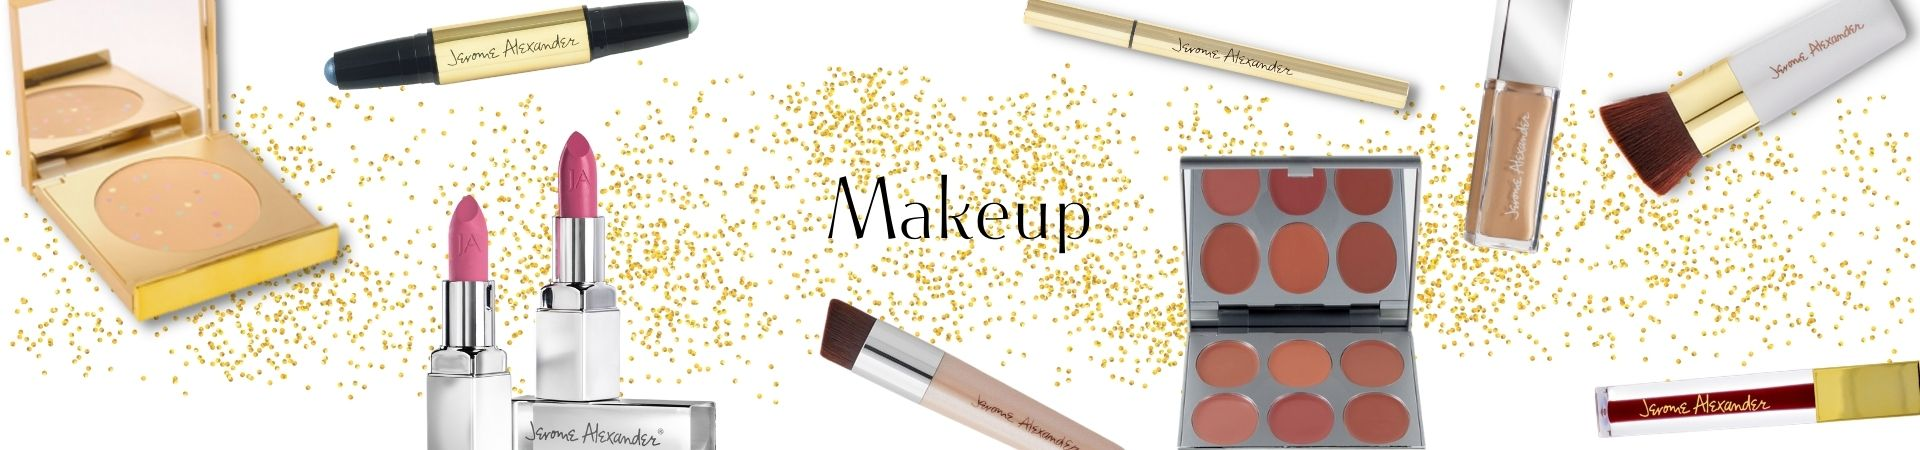 Makeup Category Banner